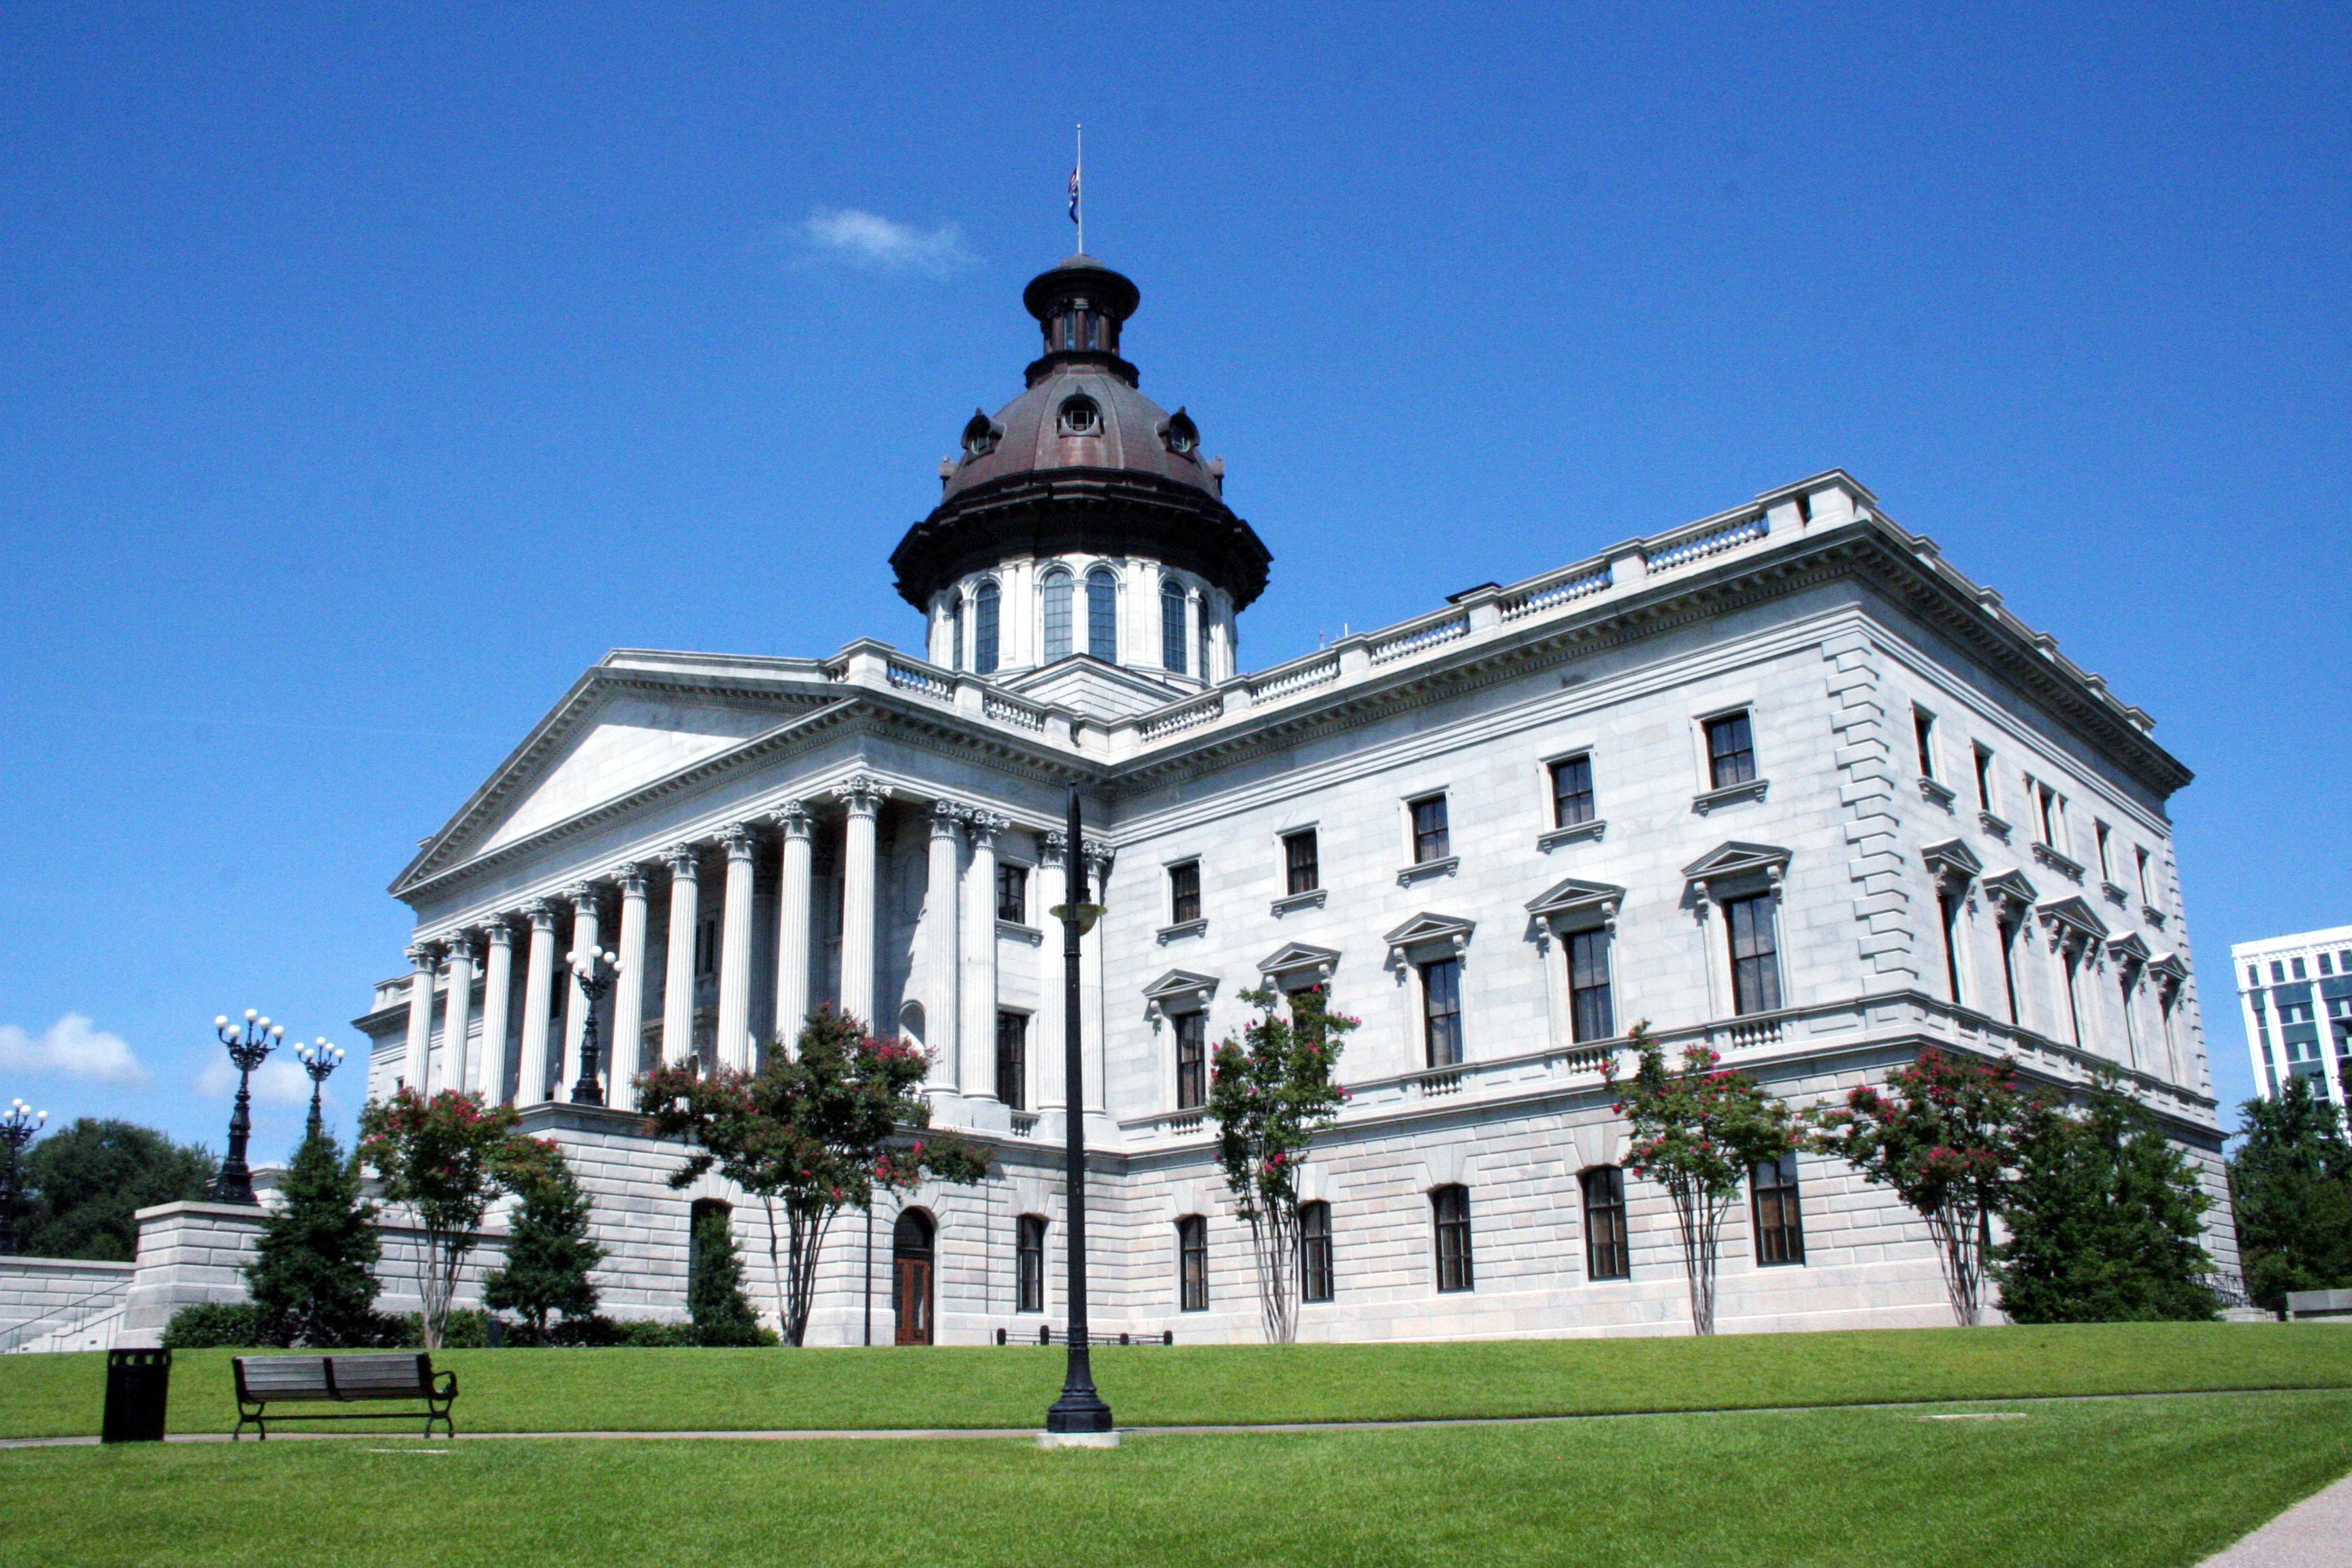 The South Carolina State House Capital Building Real